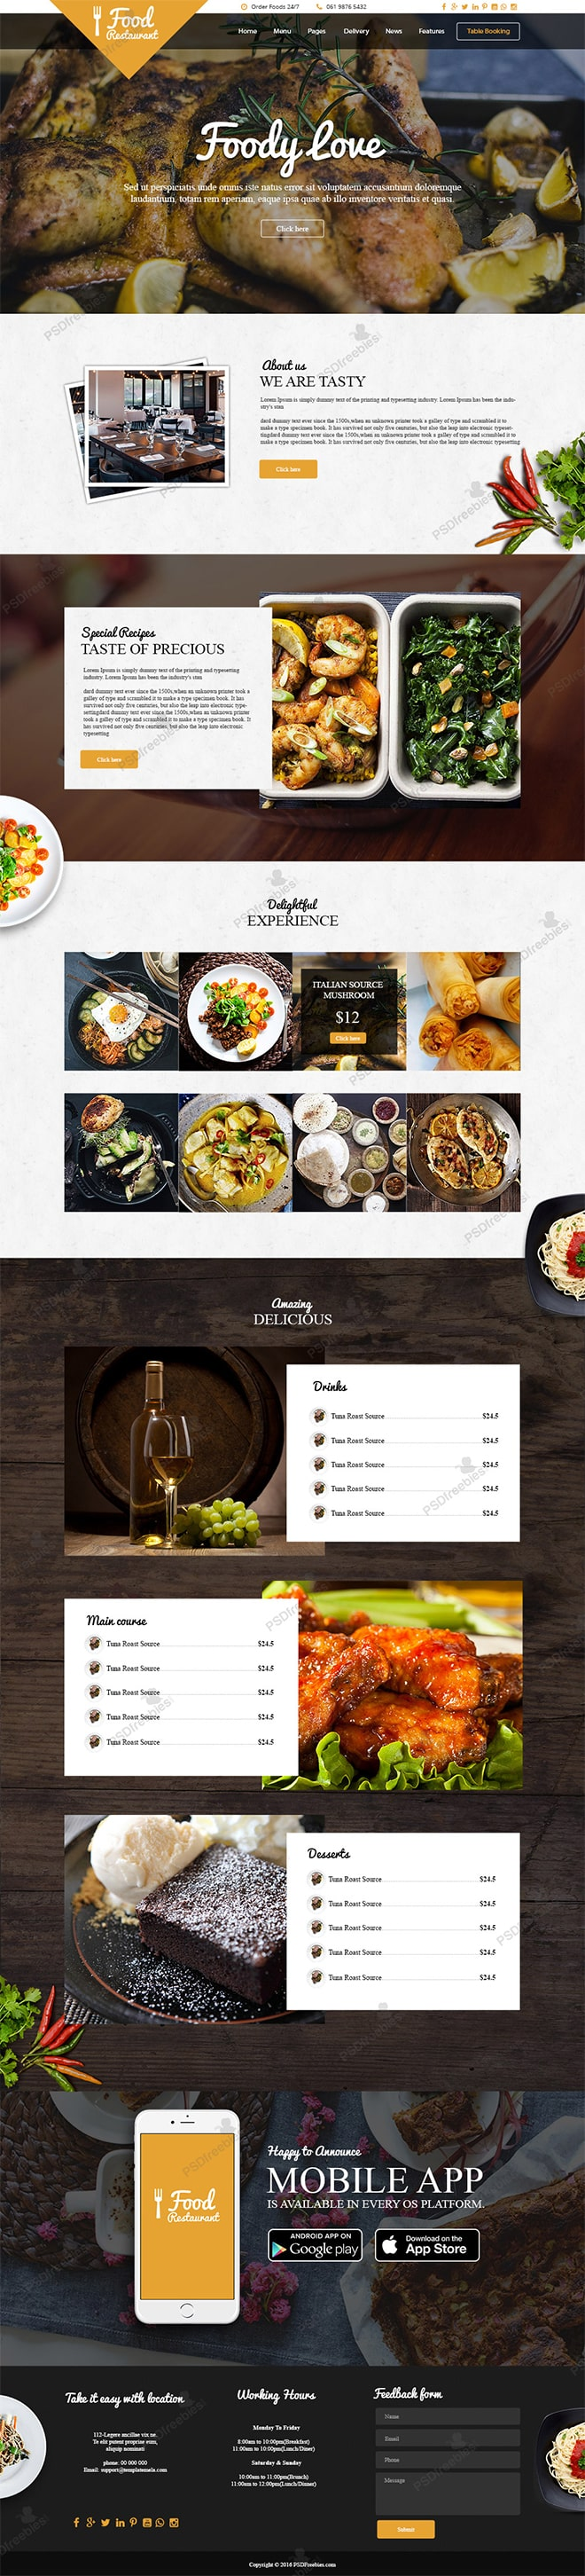 Food-and-Restaurant-Free-PSD-Template-full1-sourcepsd-min (1)